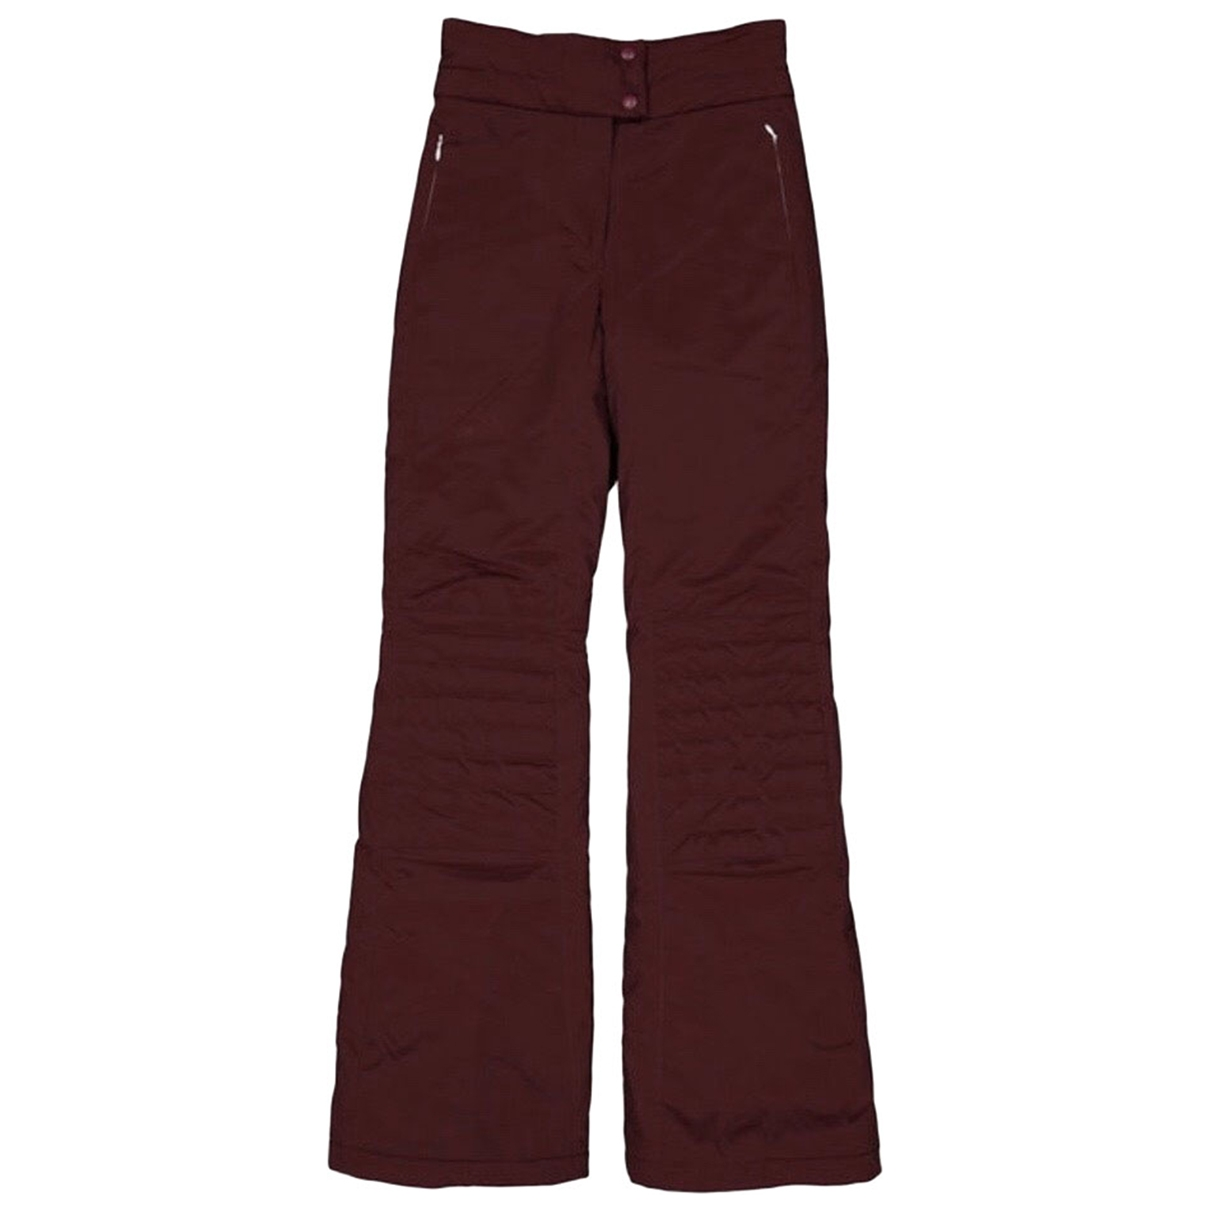 Fendi \N Burgundy Trousers for Women 40 IT